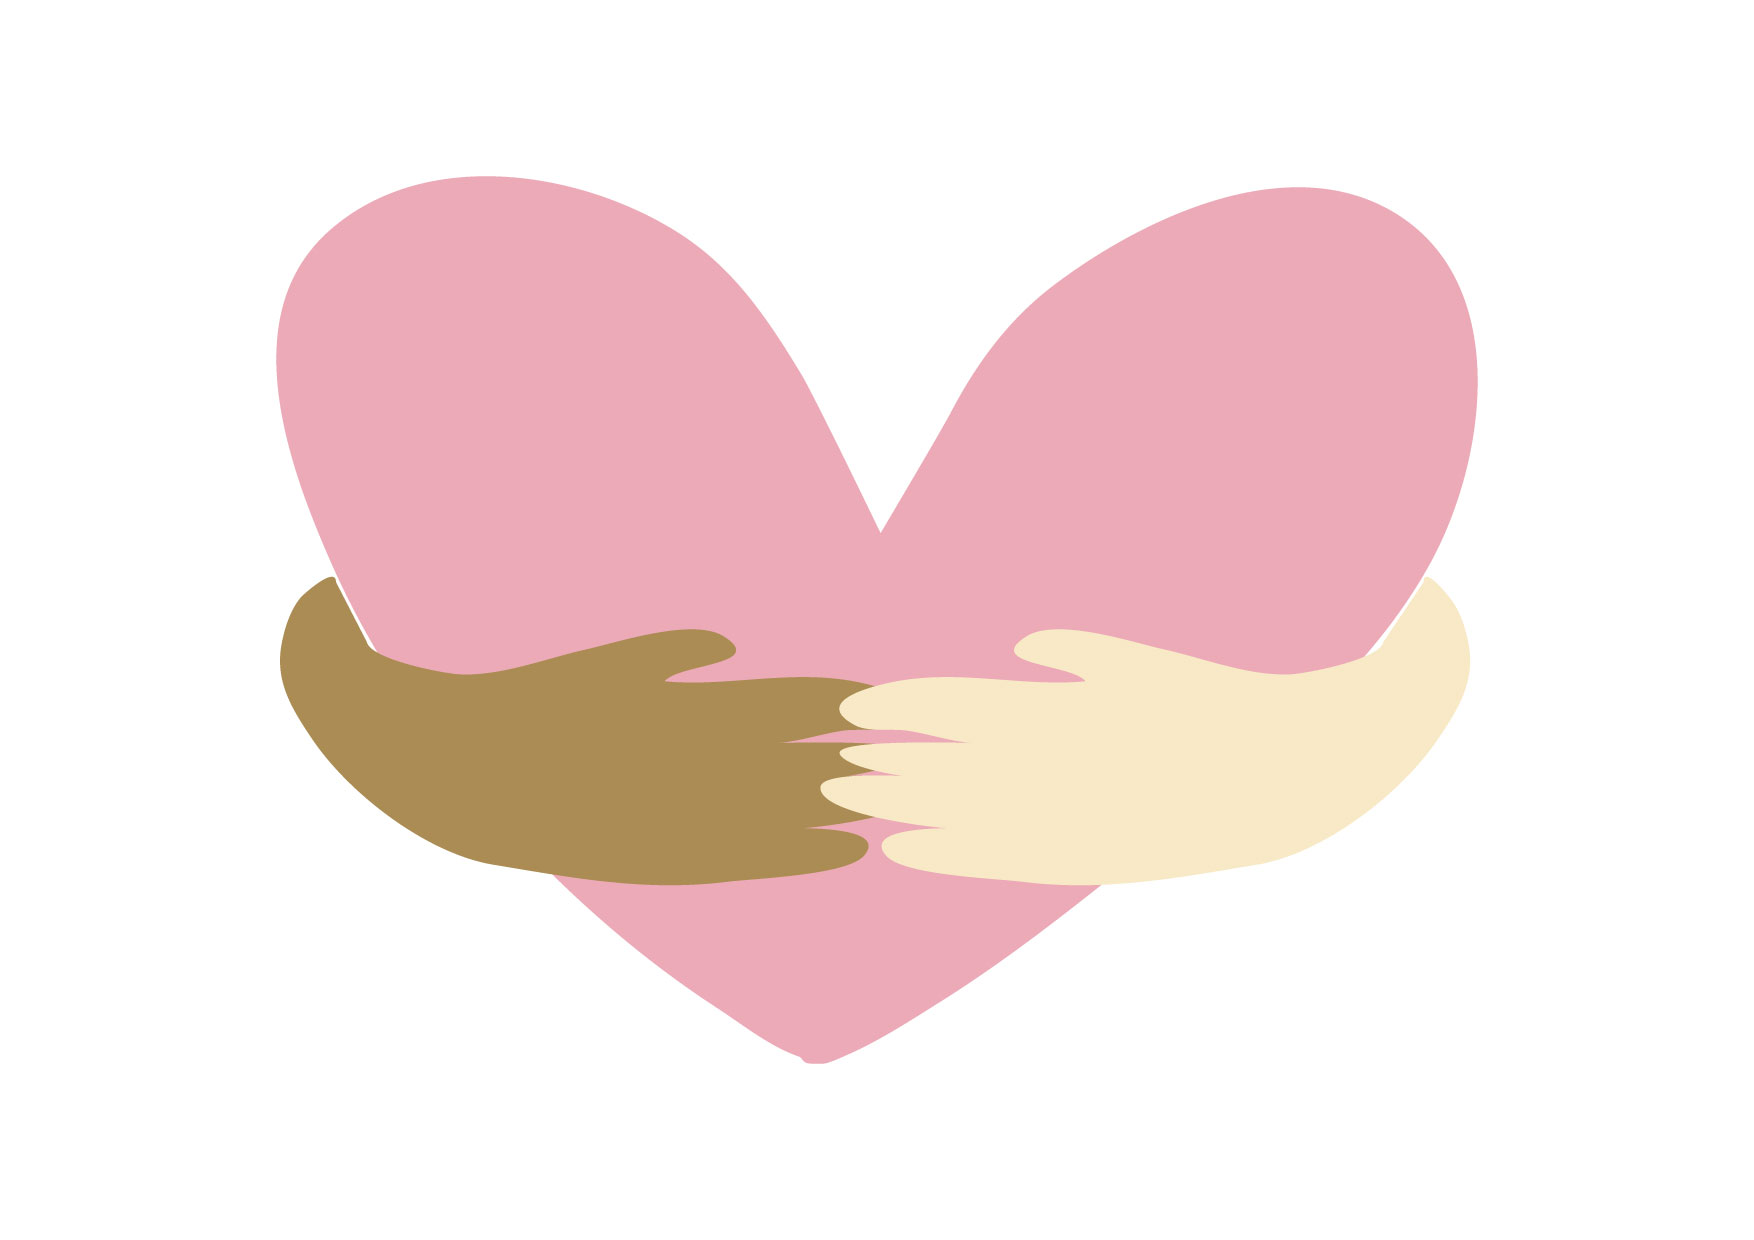 Heart mark in the hands of different races